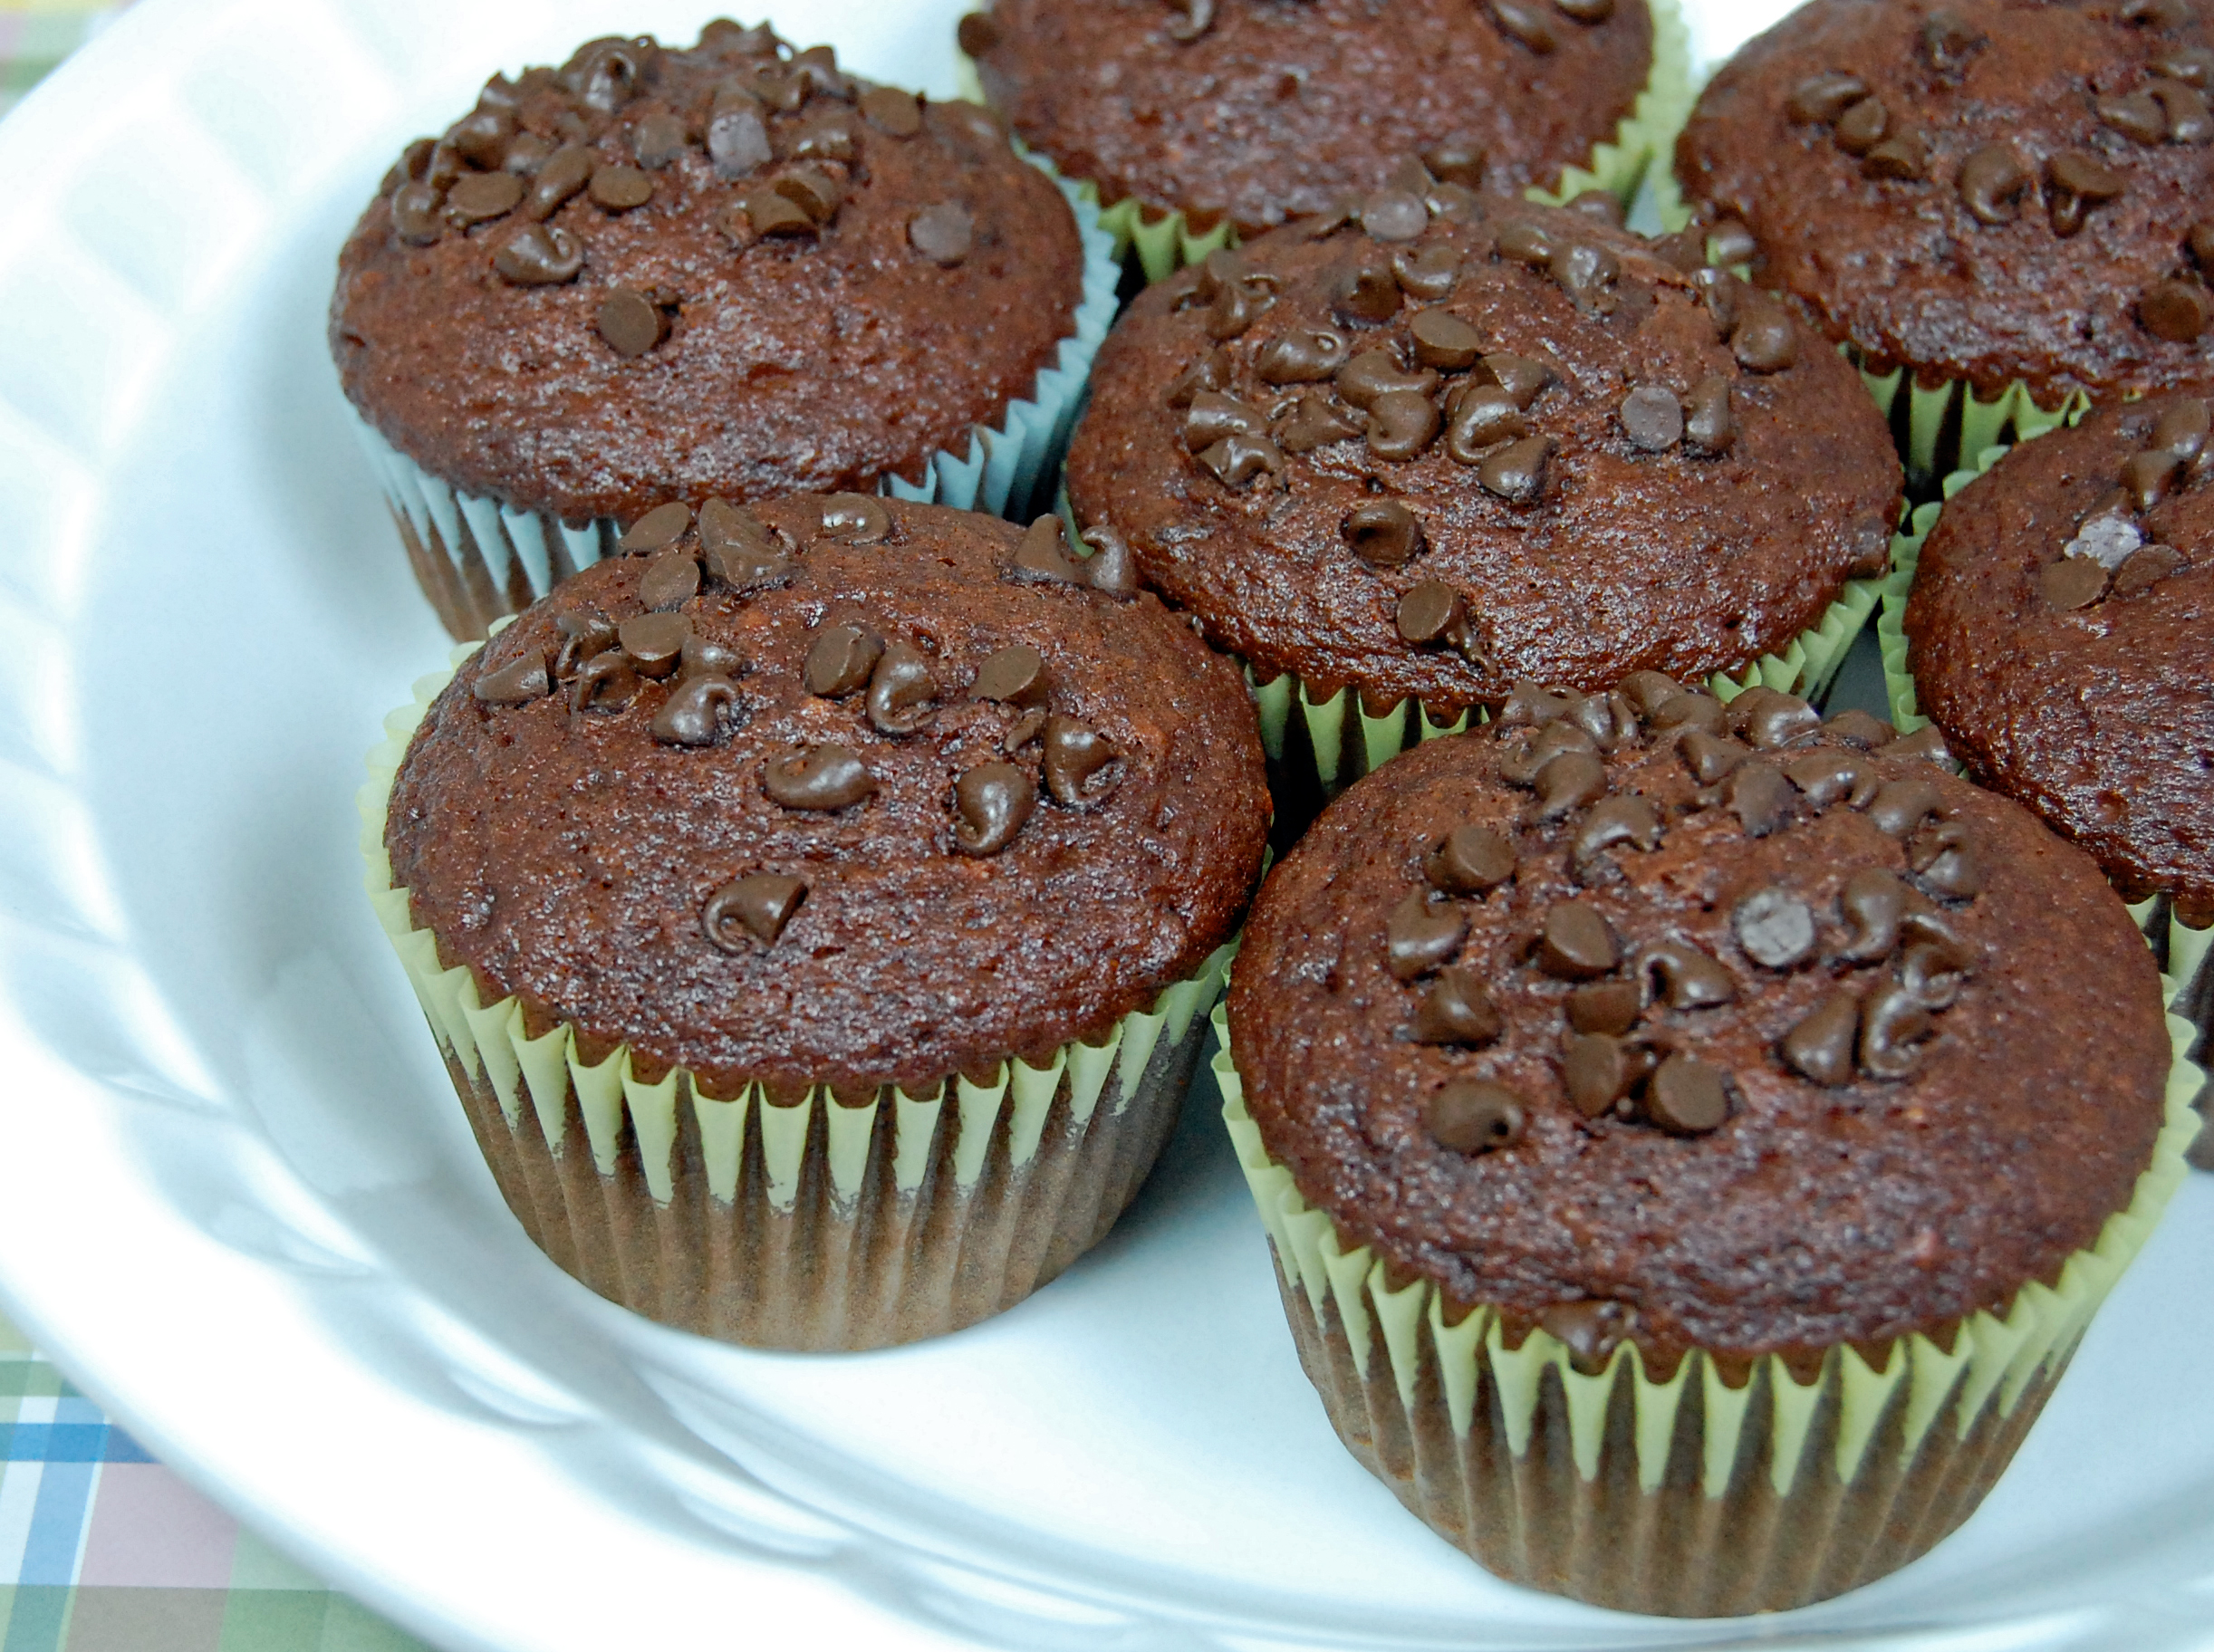 Amish Friendship Chocolate Muffins